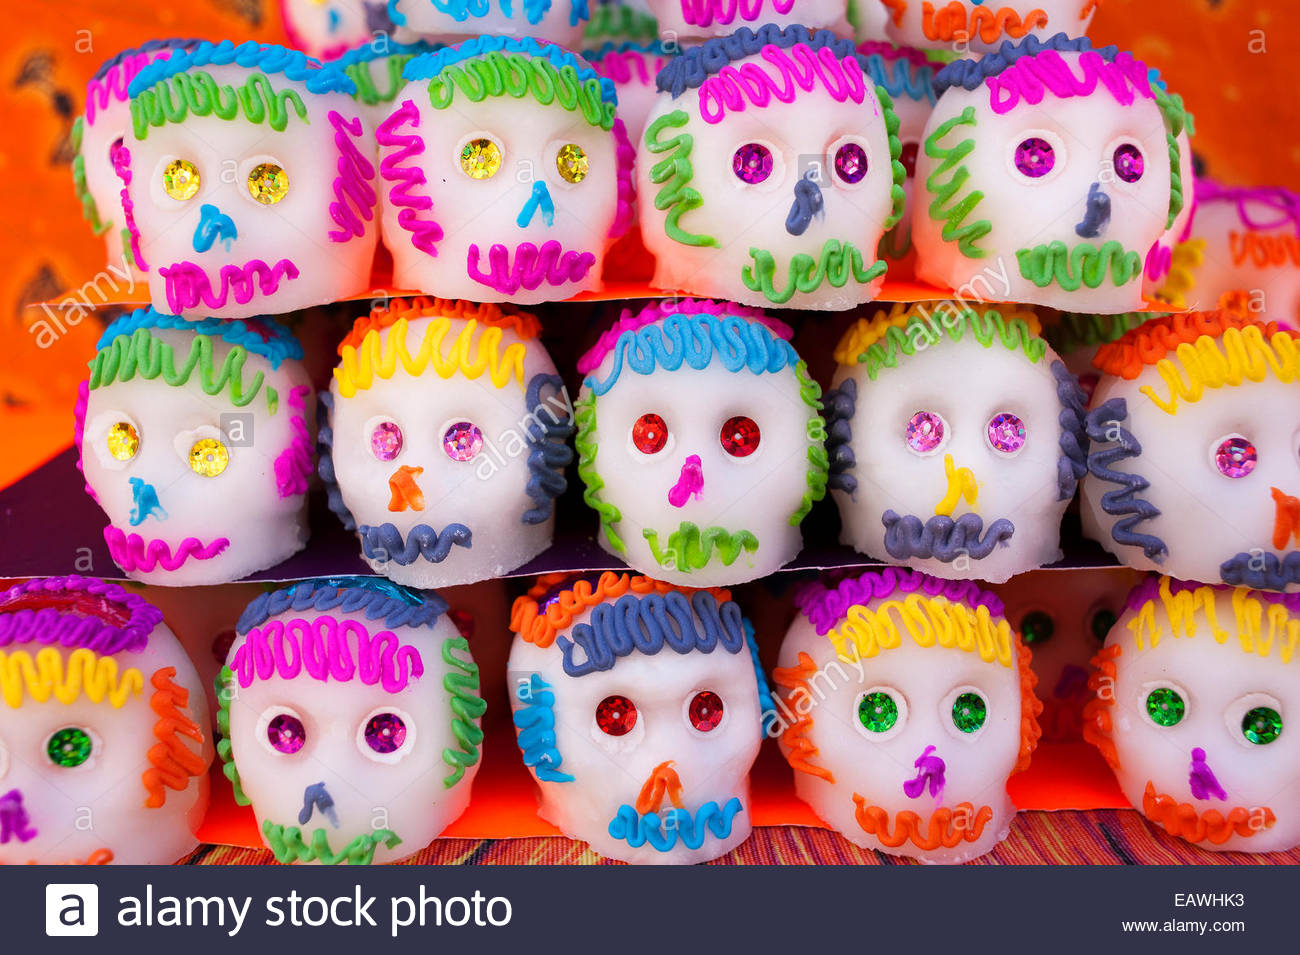 A display of sugar skulls celebrates Mexico's Day of the Dead. - Stock Image